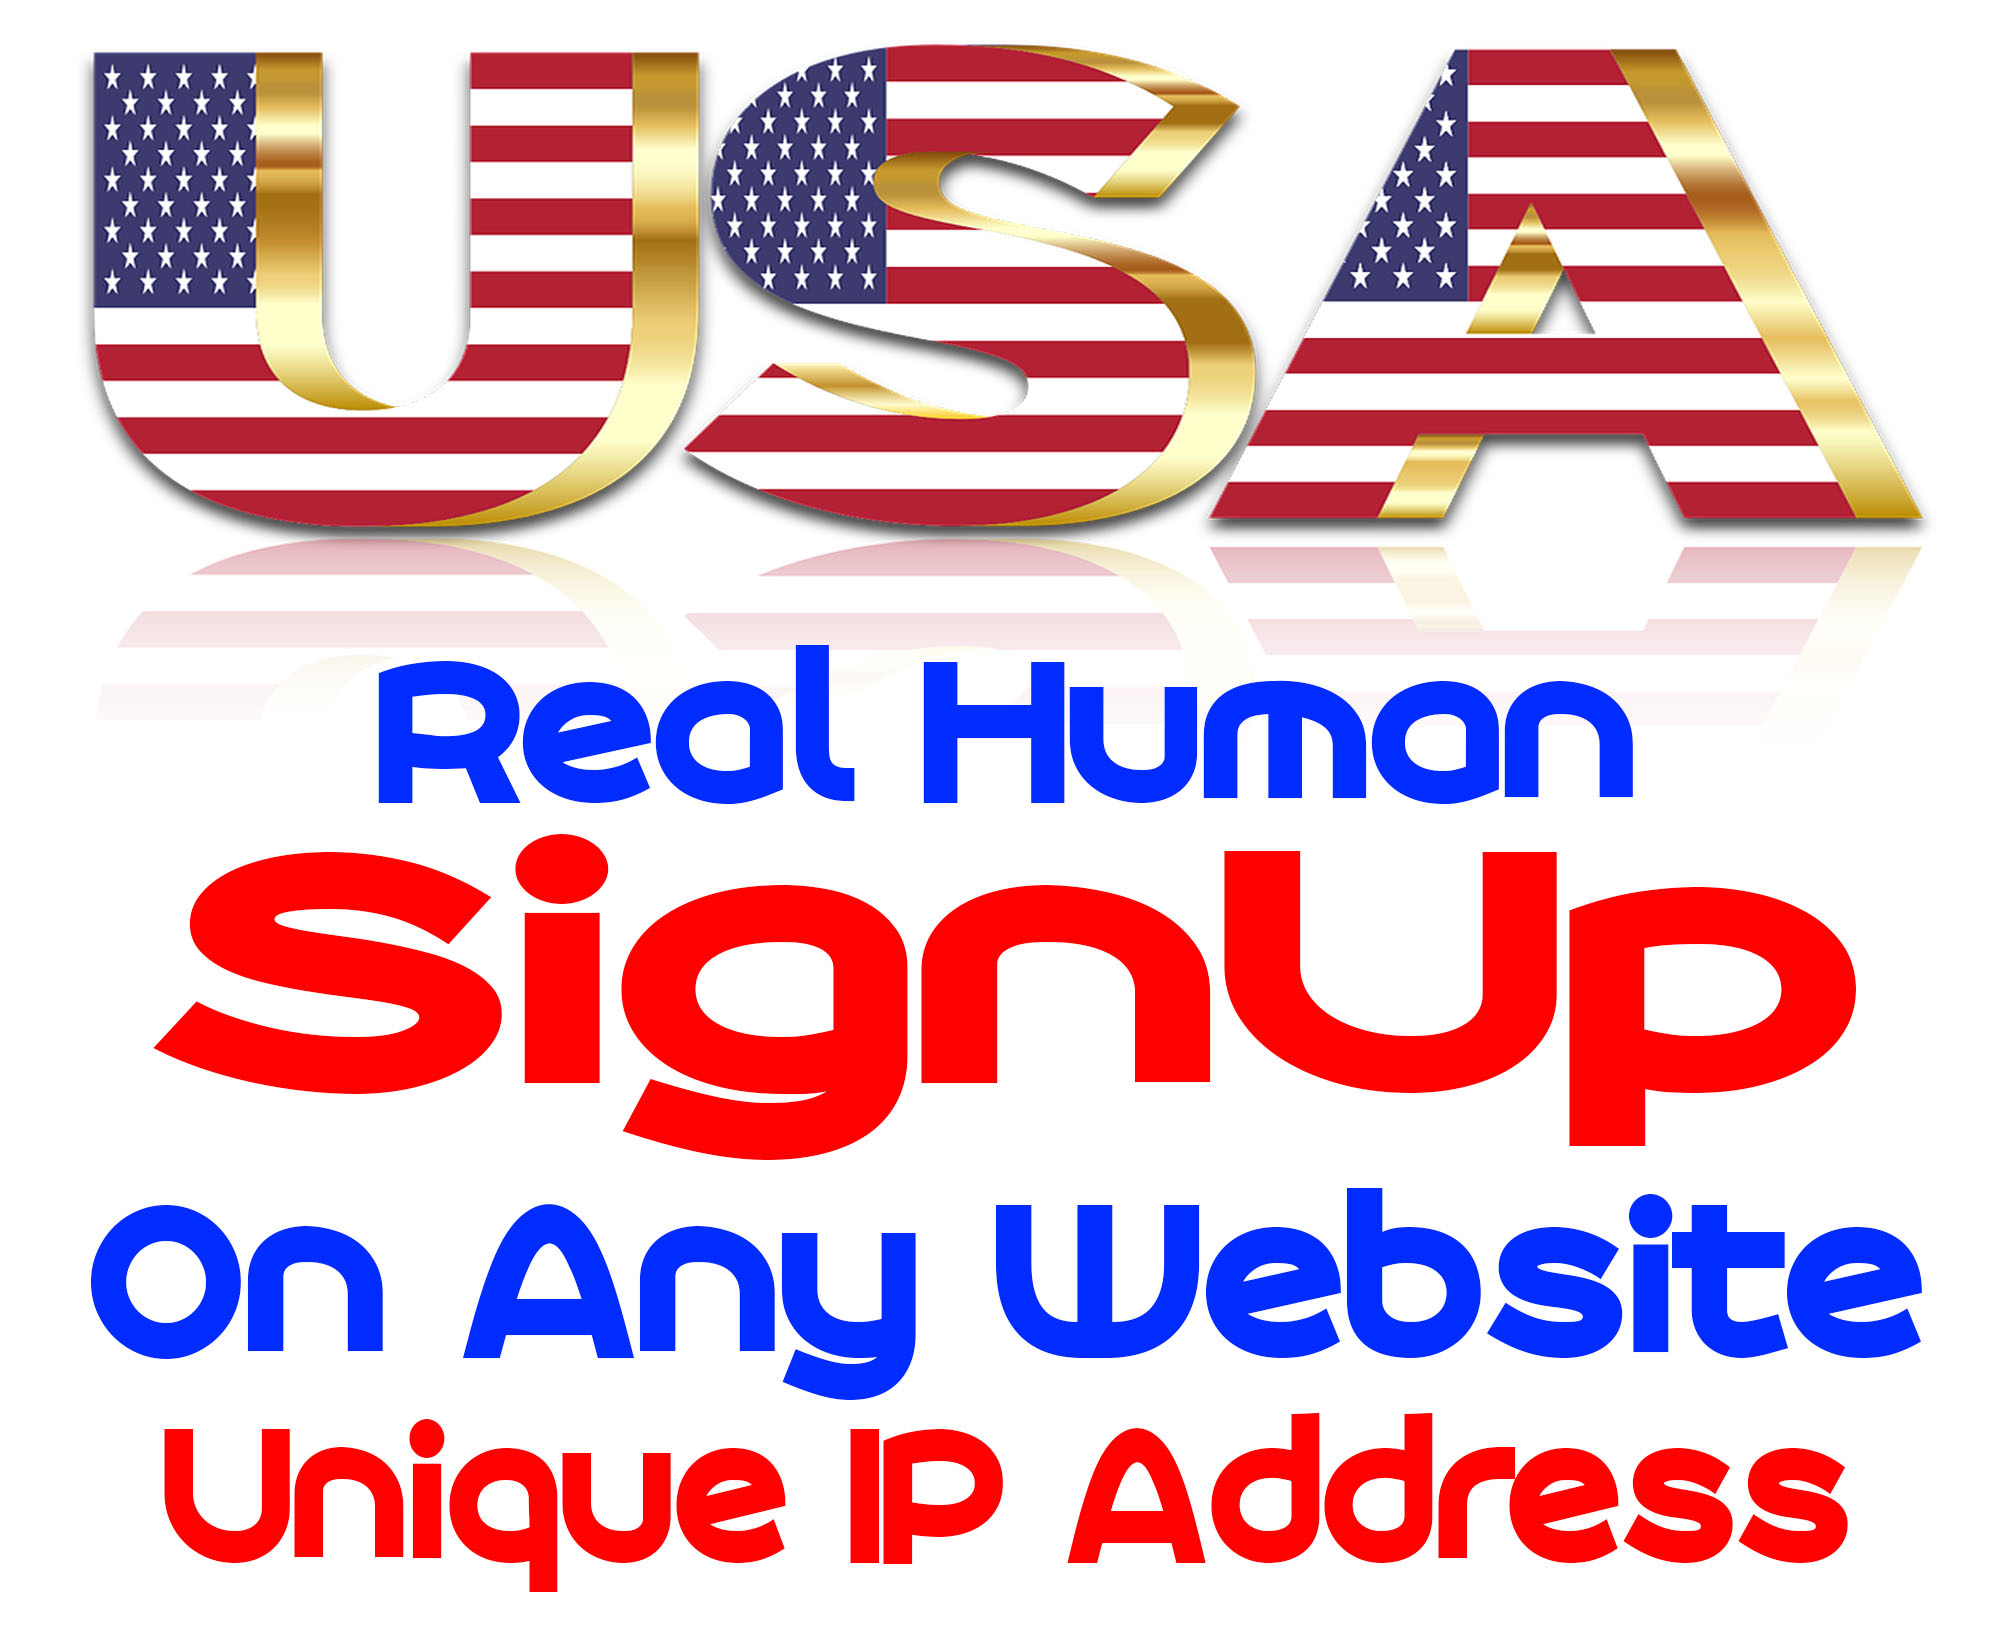 USA 100+ People Join or Signup On Any Website With Different IP Address